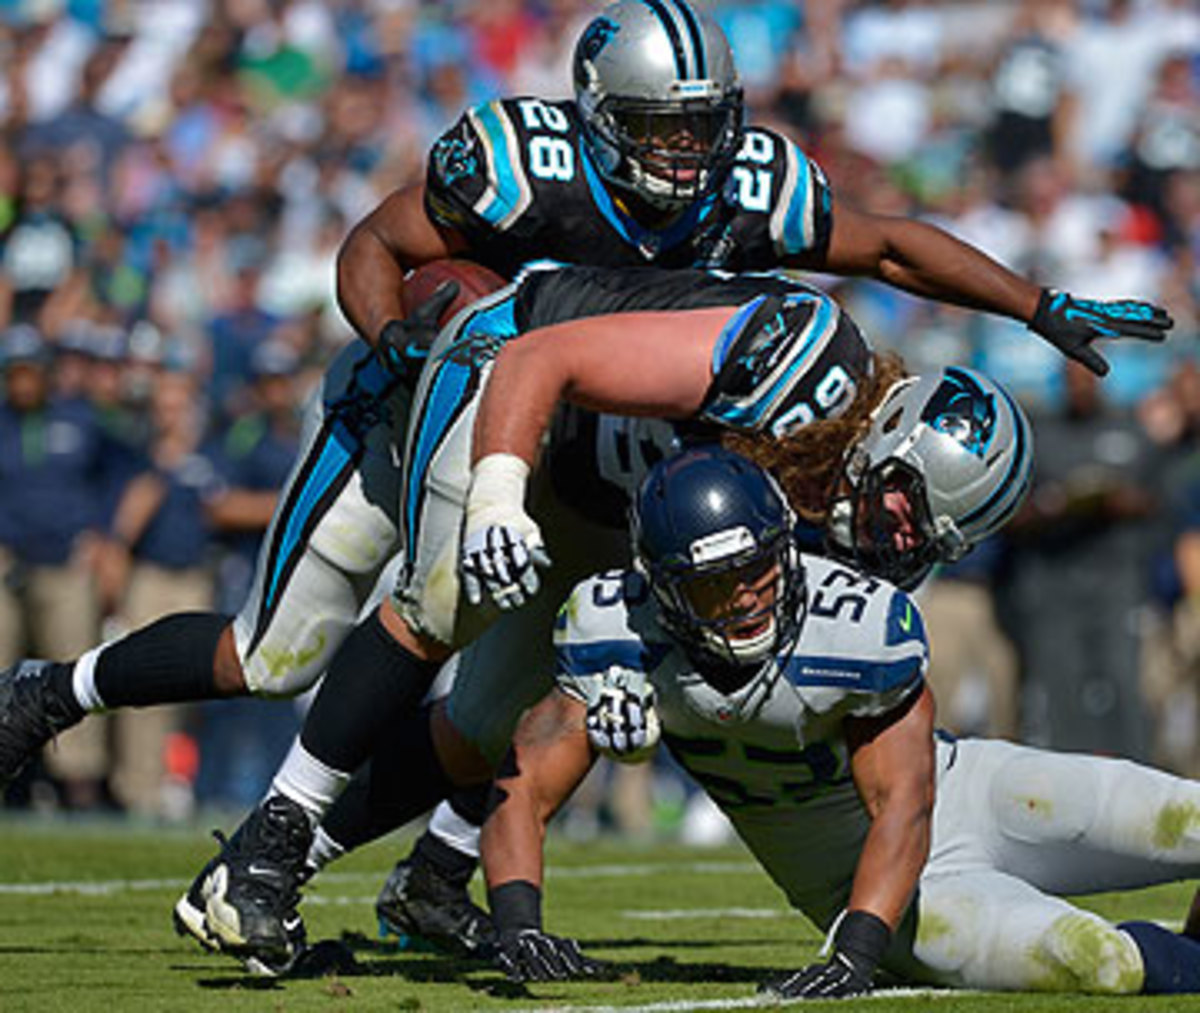 The Jonathan Stewart-led ground game rushed for 114 yards in a 13-9 loss to Seattle in Week 8. (Streeter Lecka/Getty Images)